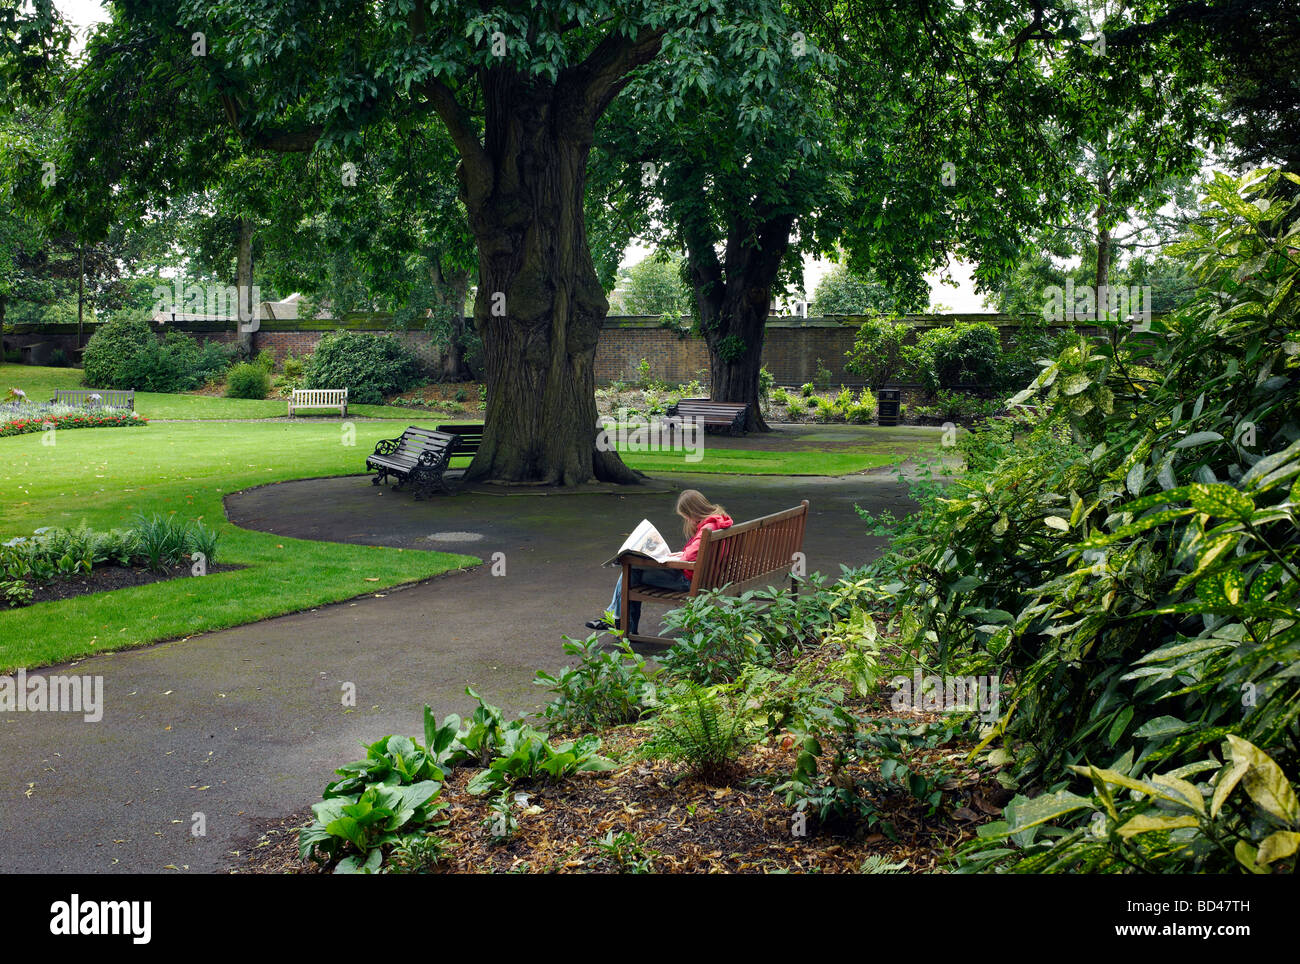 A woman reading in a secluded park in Warwick, UK - Stock Image